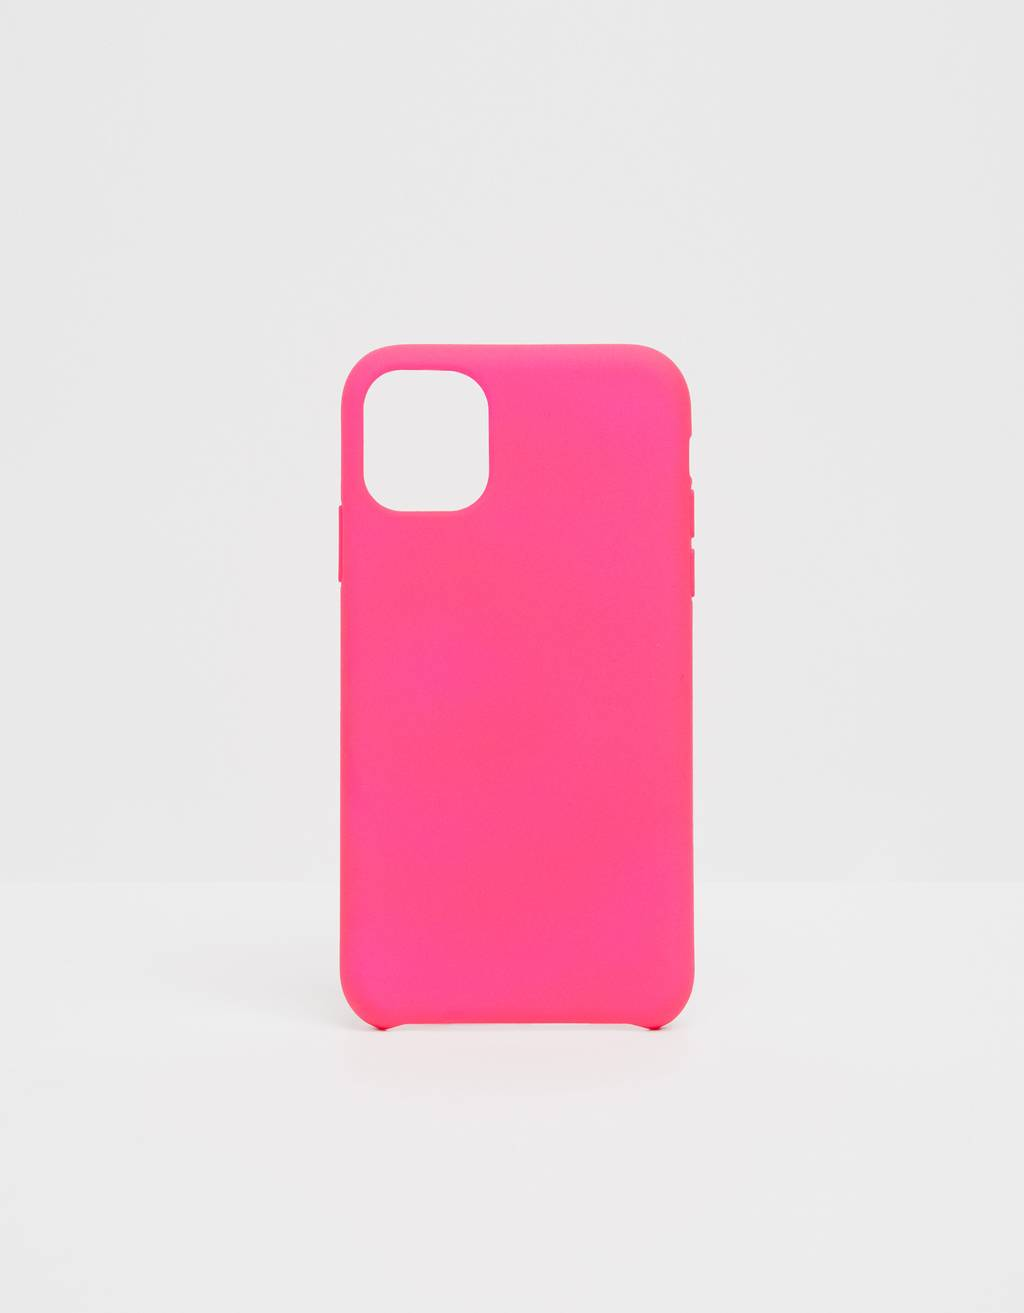 Capa monocolor iPhone 11 Pro Max